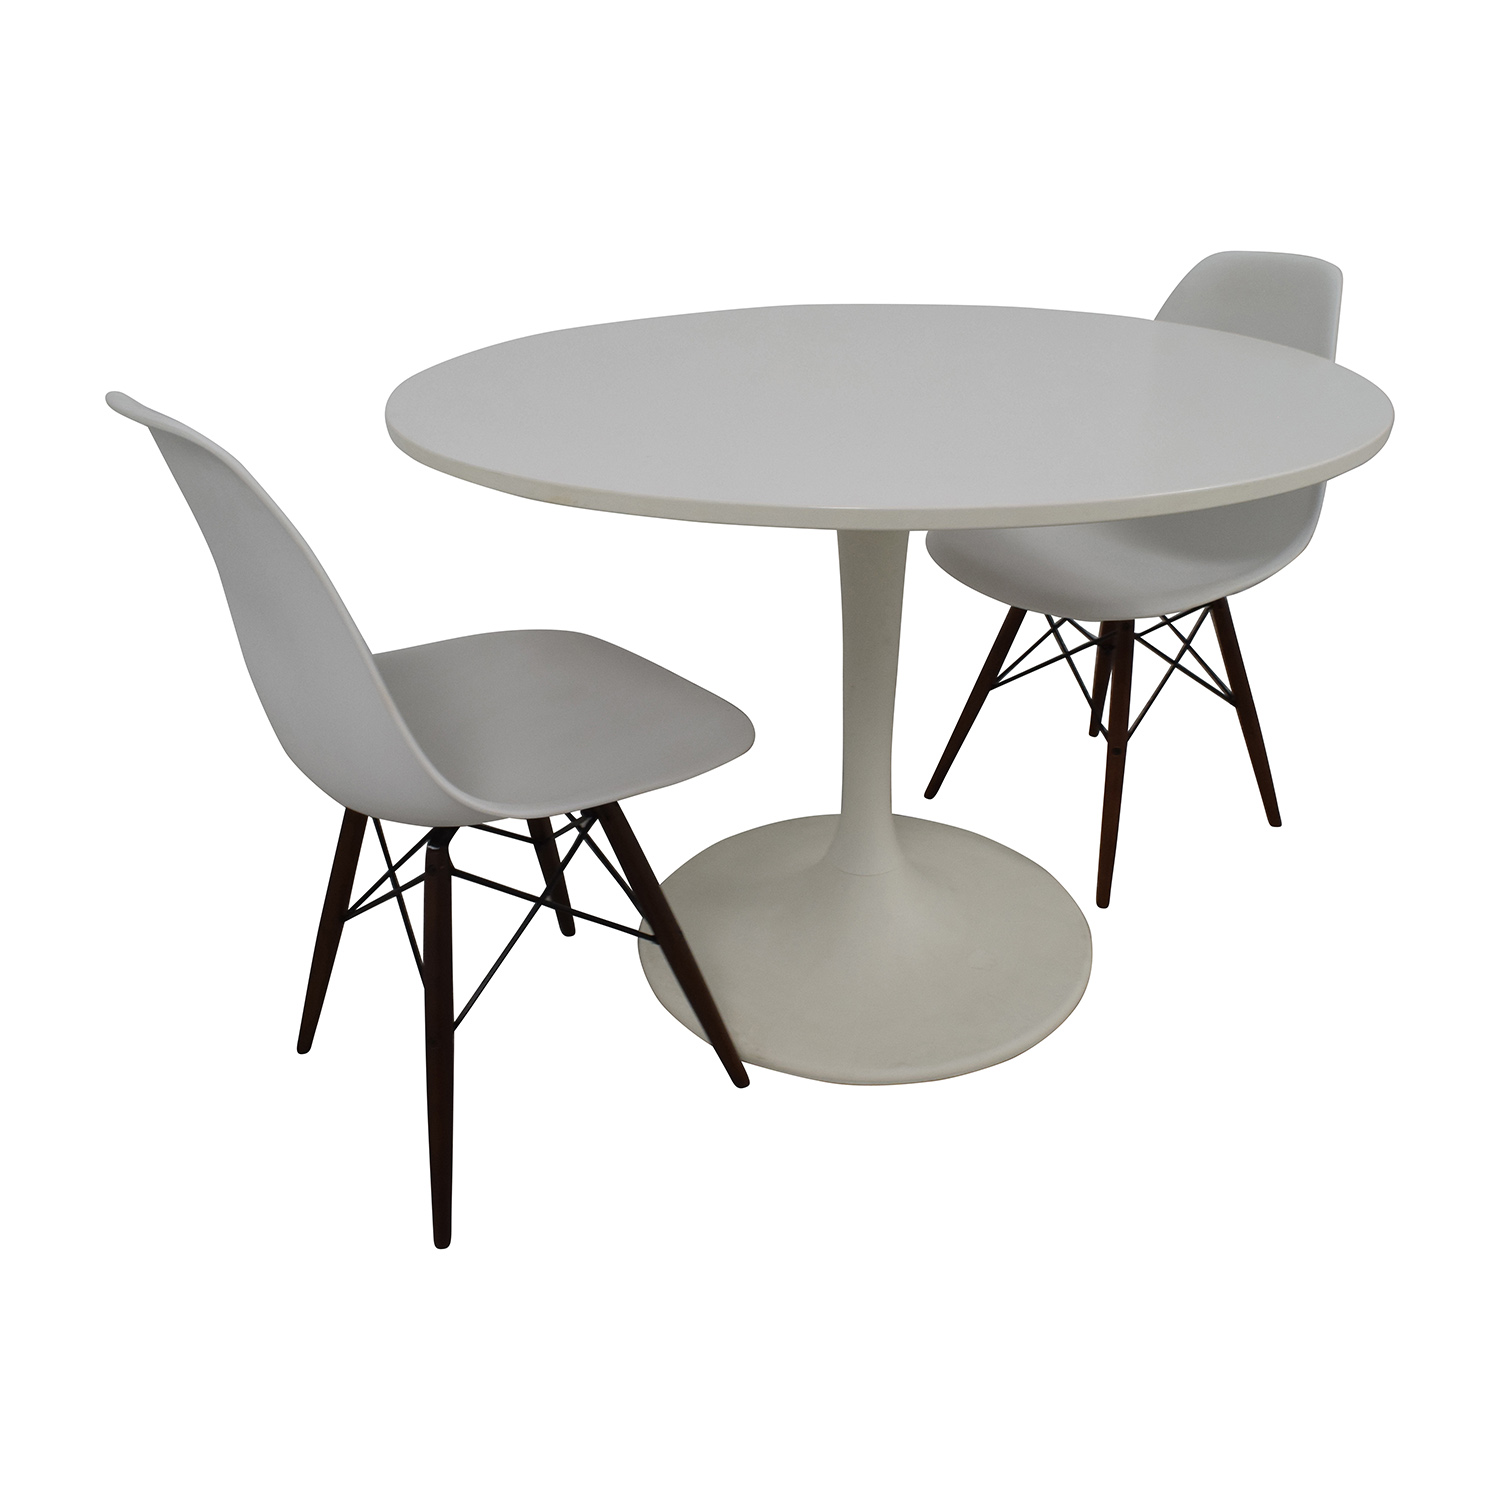 Tulip Table And Chairs 53 Off Vortex Tulip Table And Vortex Chair Set Tables